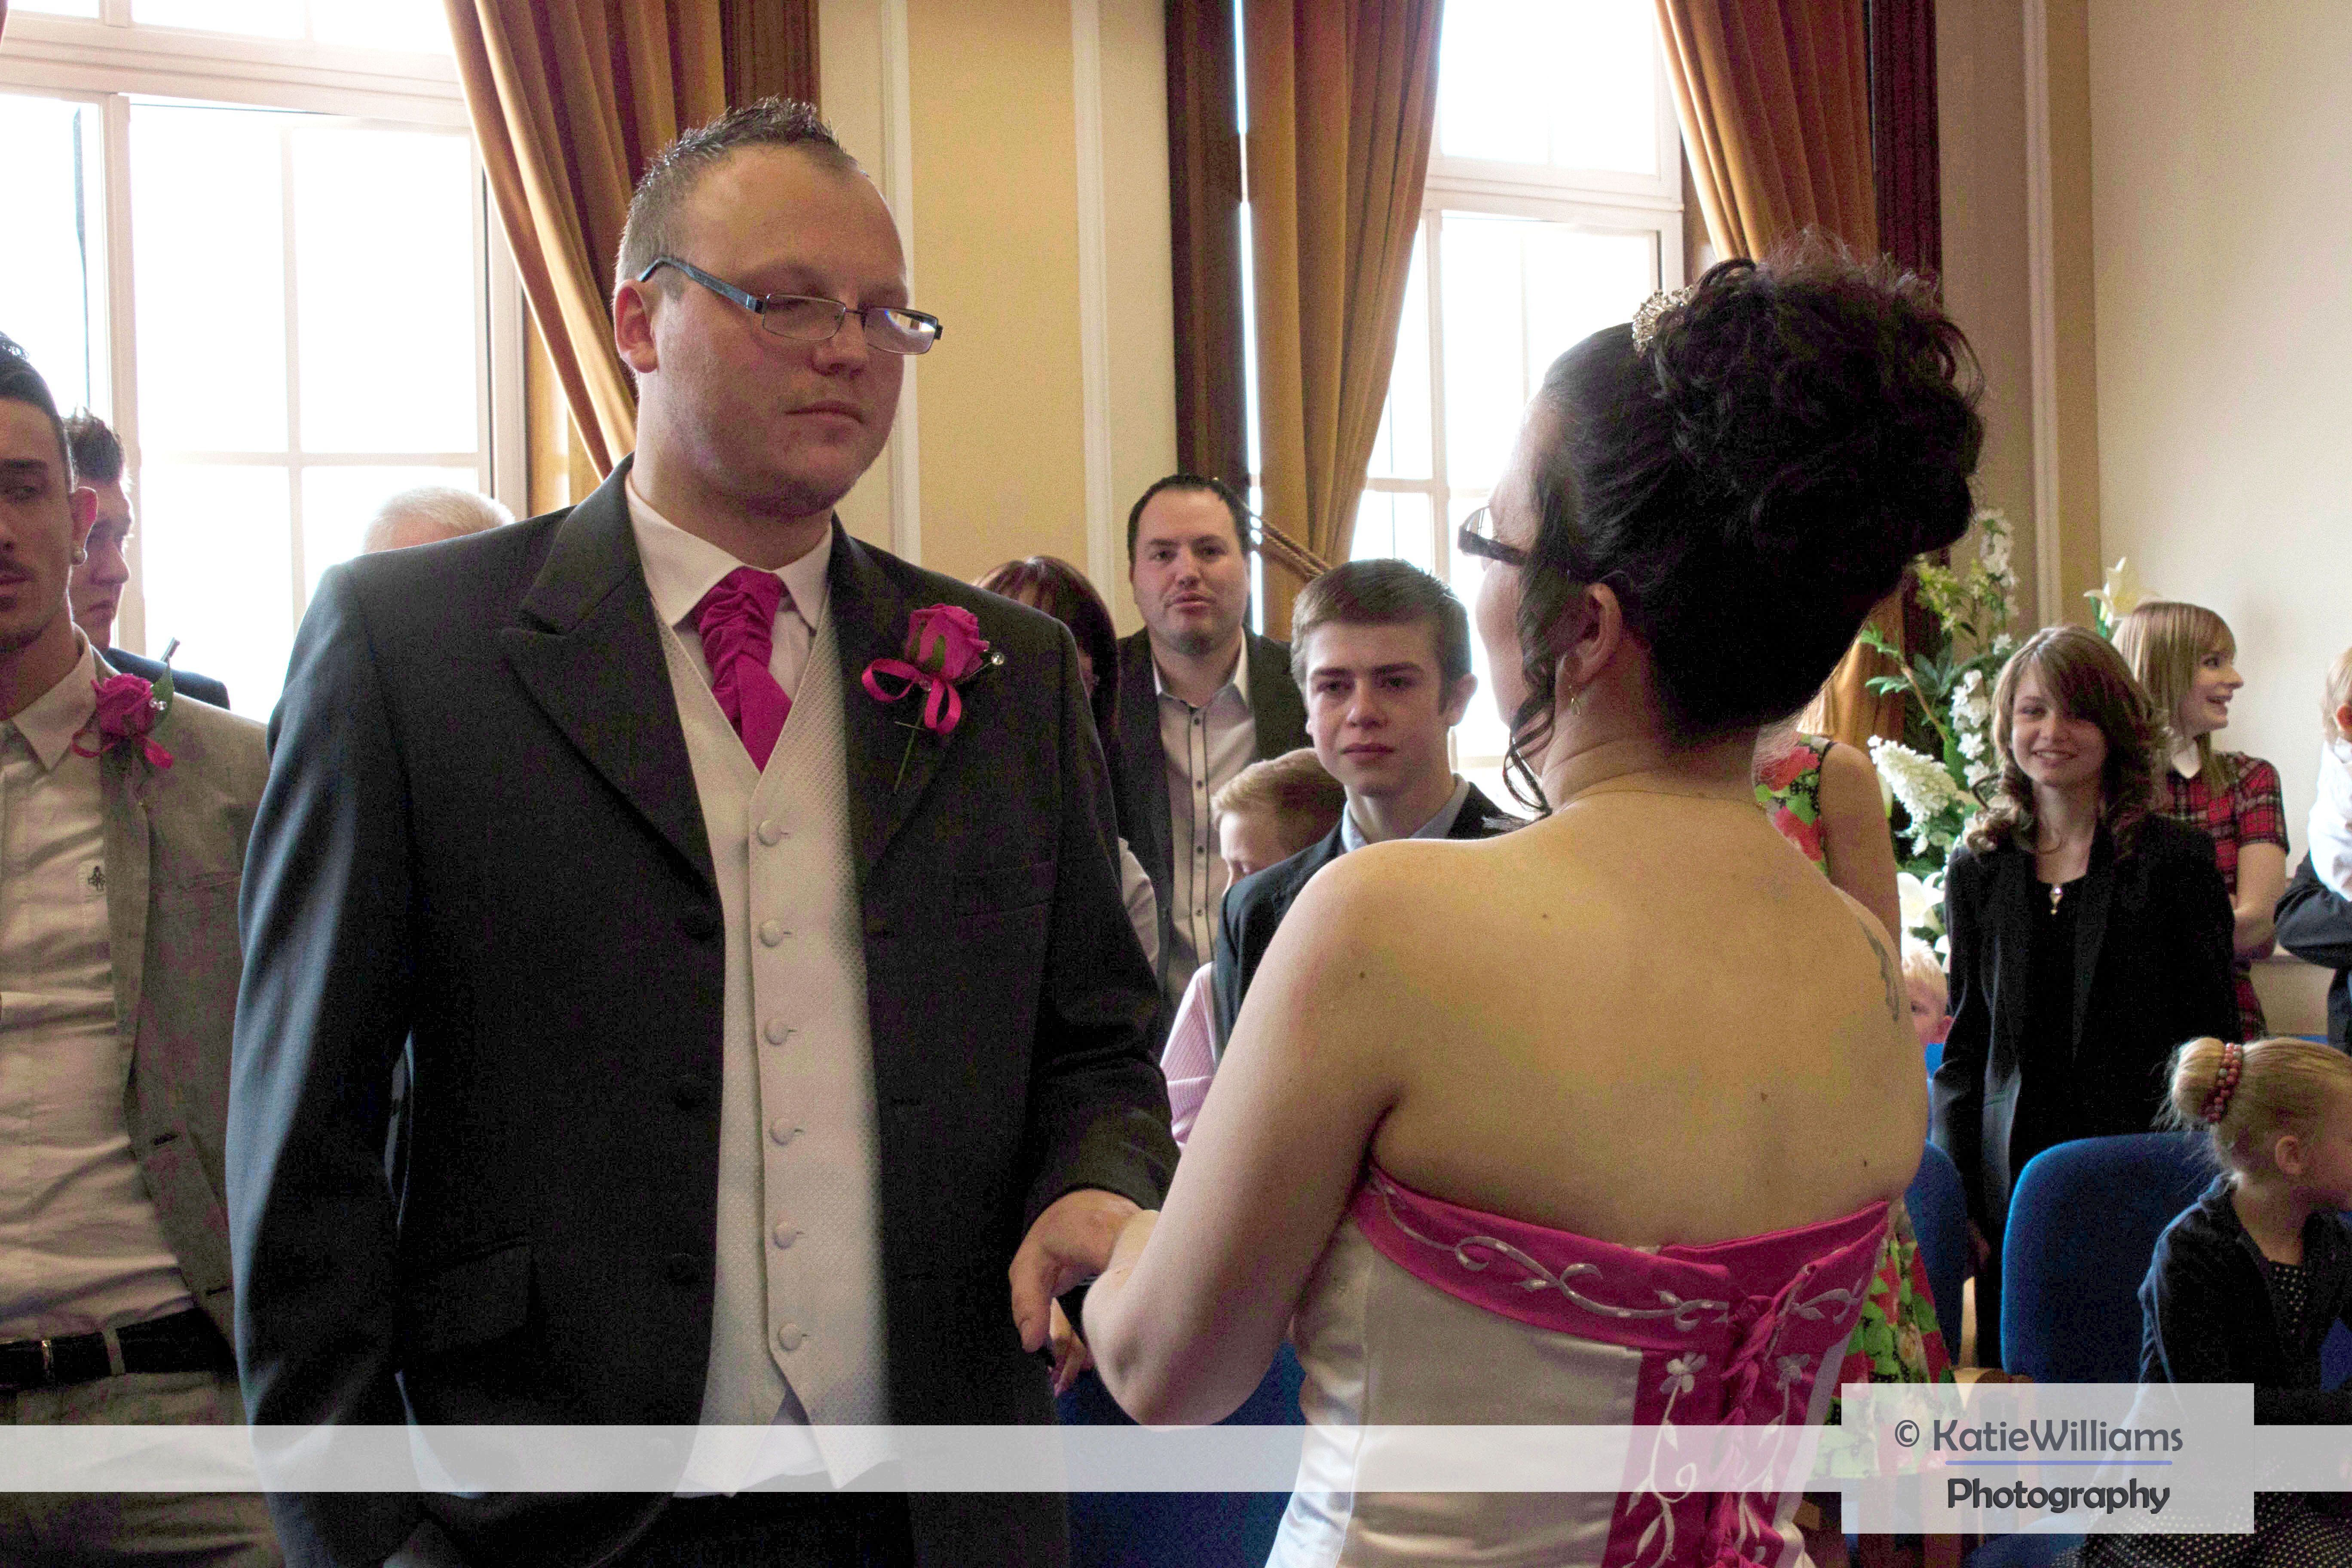 The Wedding of Joanne & Phil